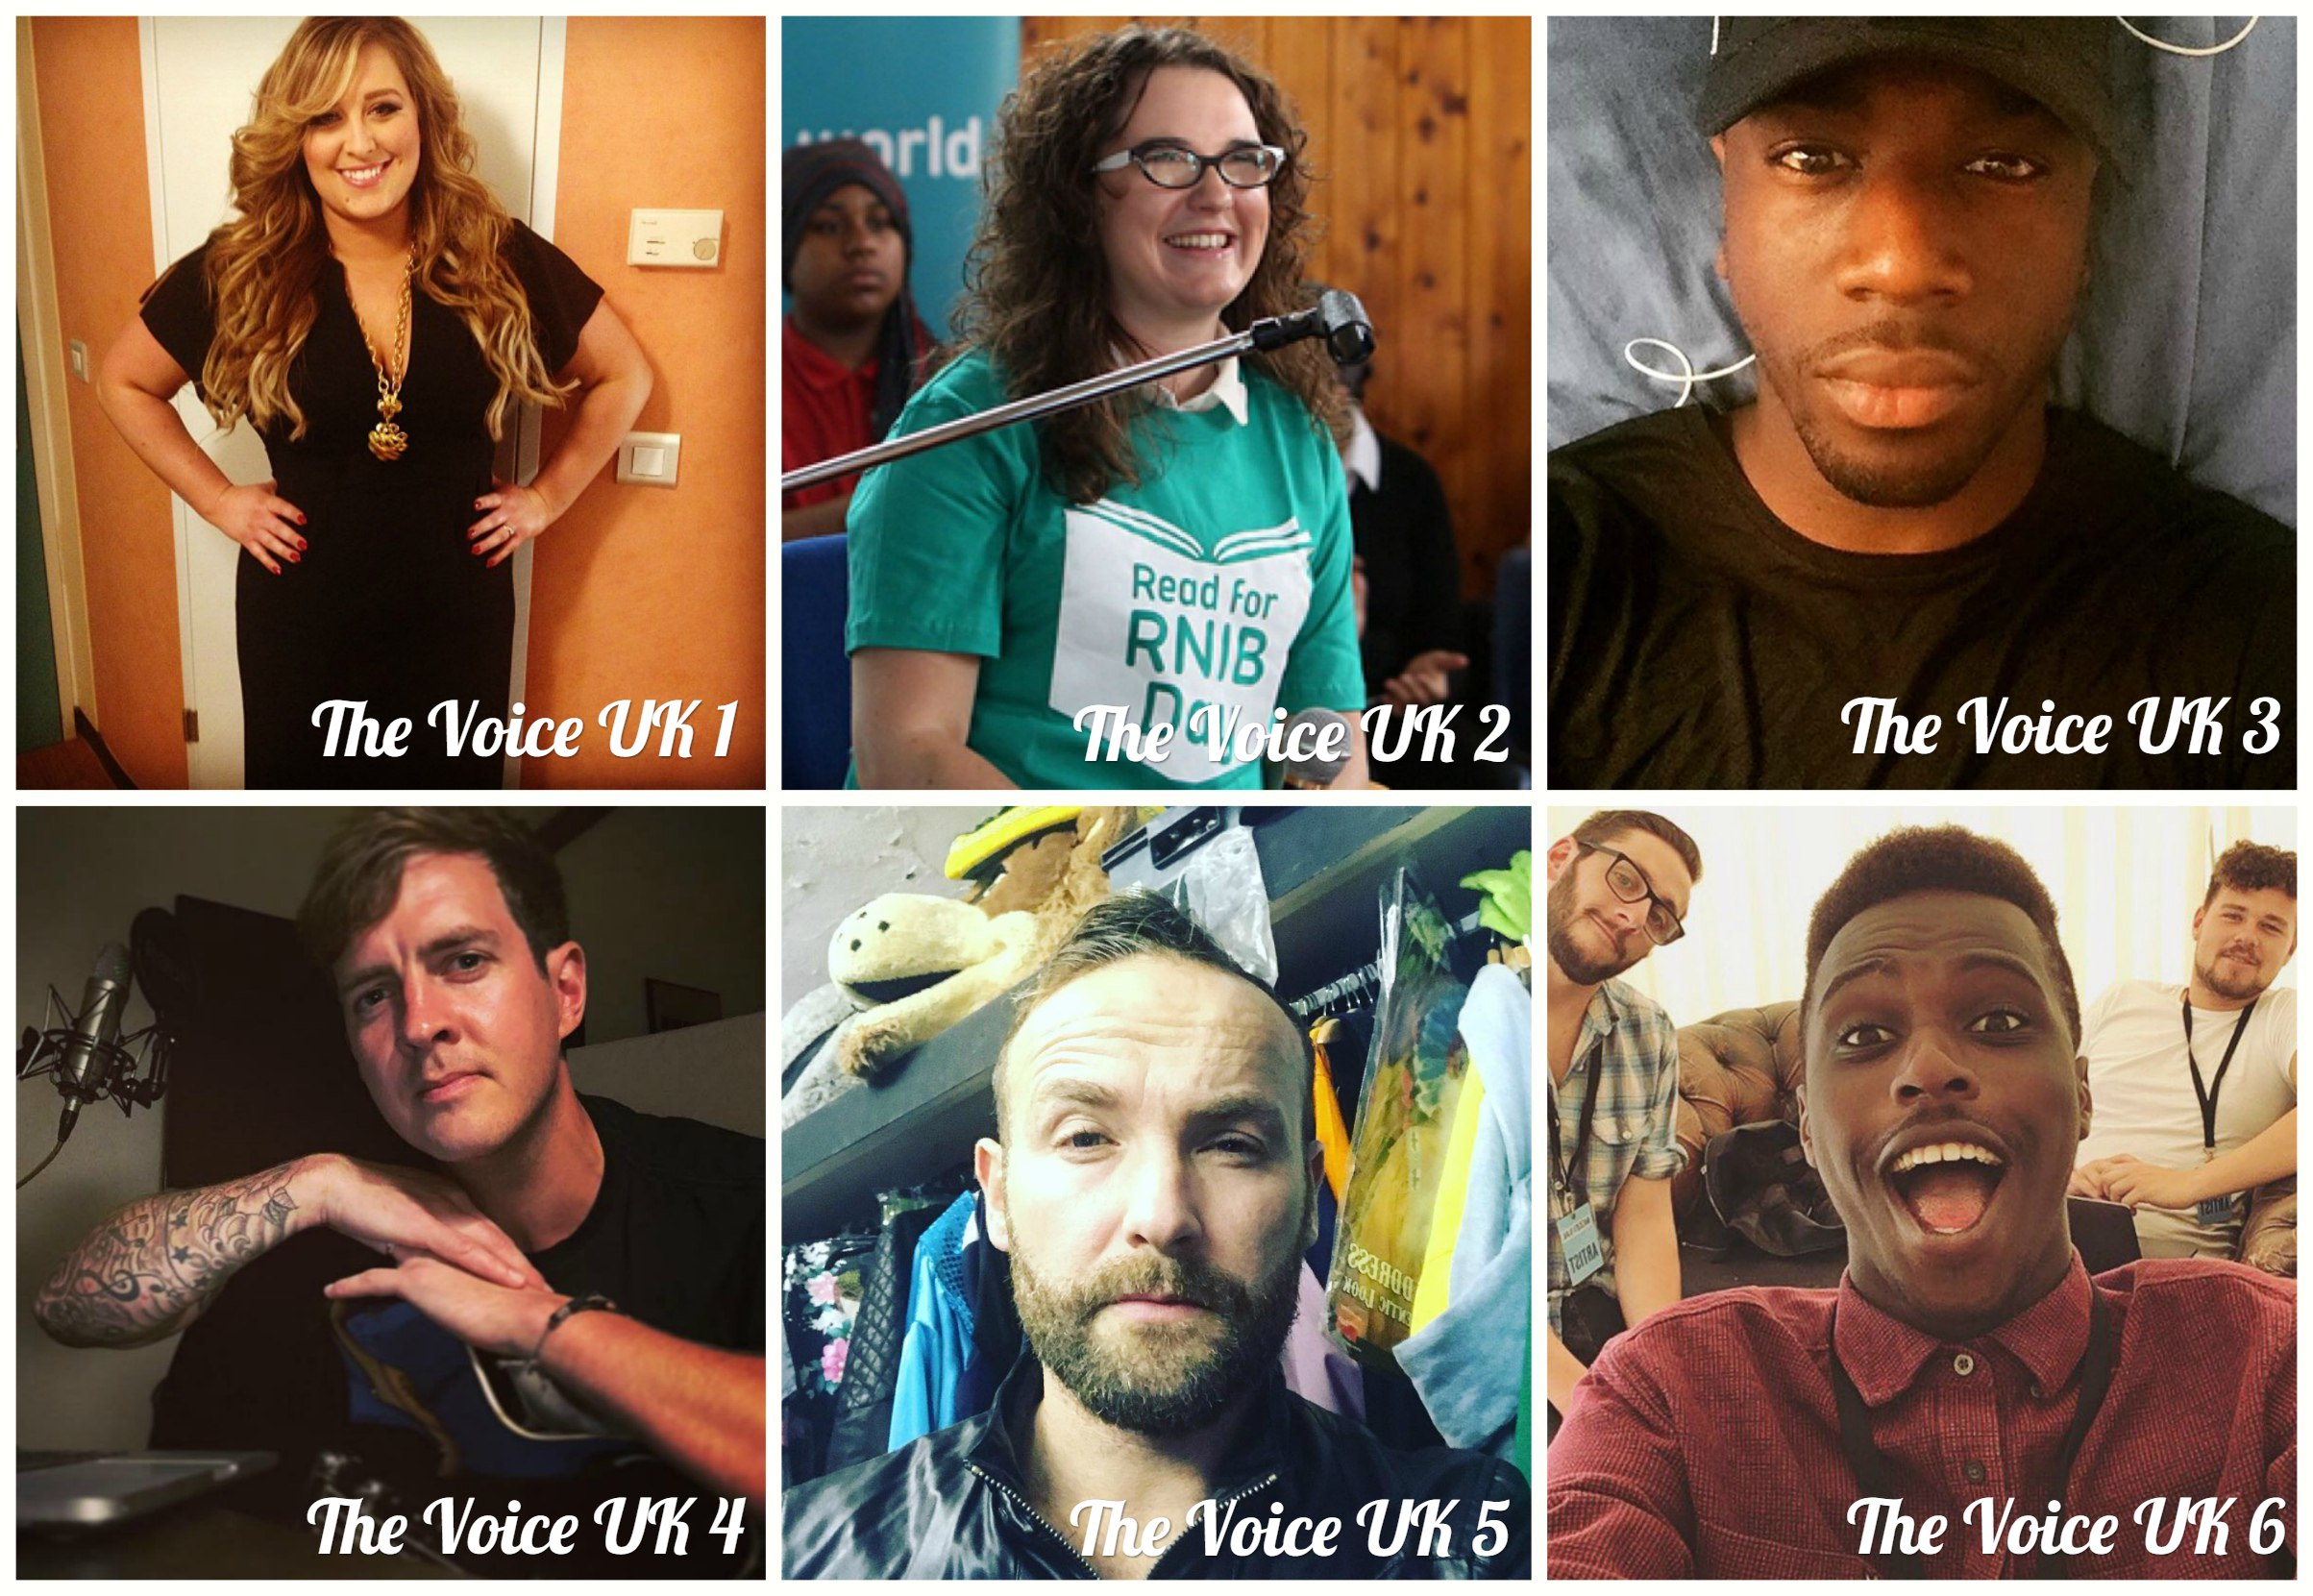 All winners of The Voice UK of all seasons Leanne Mitchell, Andrea Begley, Jermain Jackman, Stevie McCrorie, Kevin Simm, Mo Adeniran